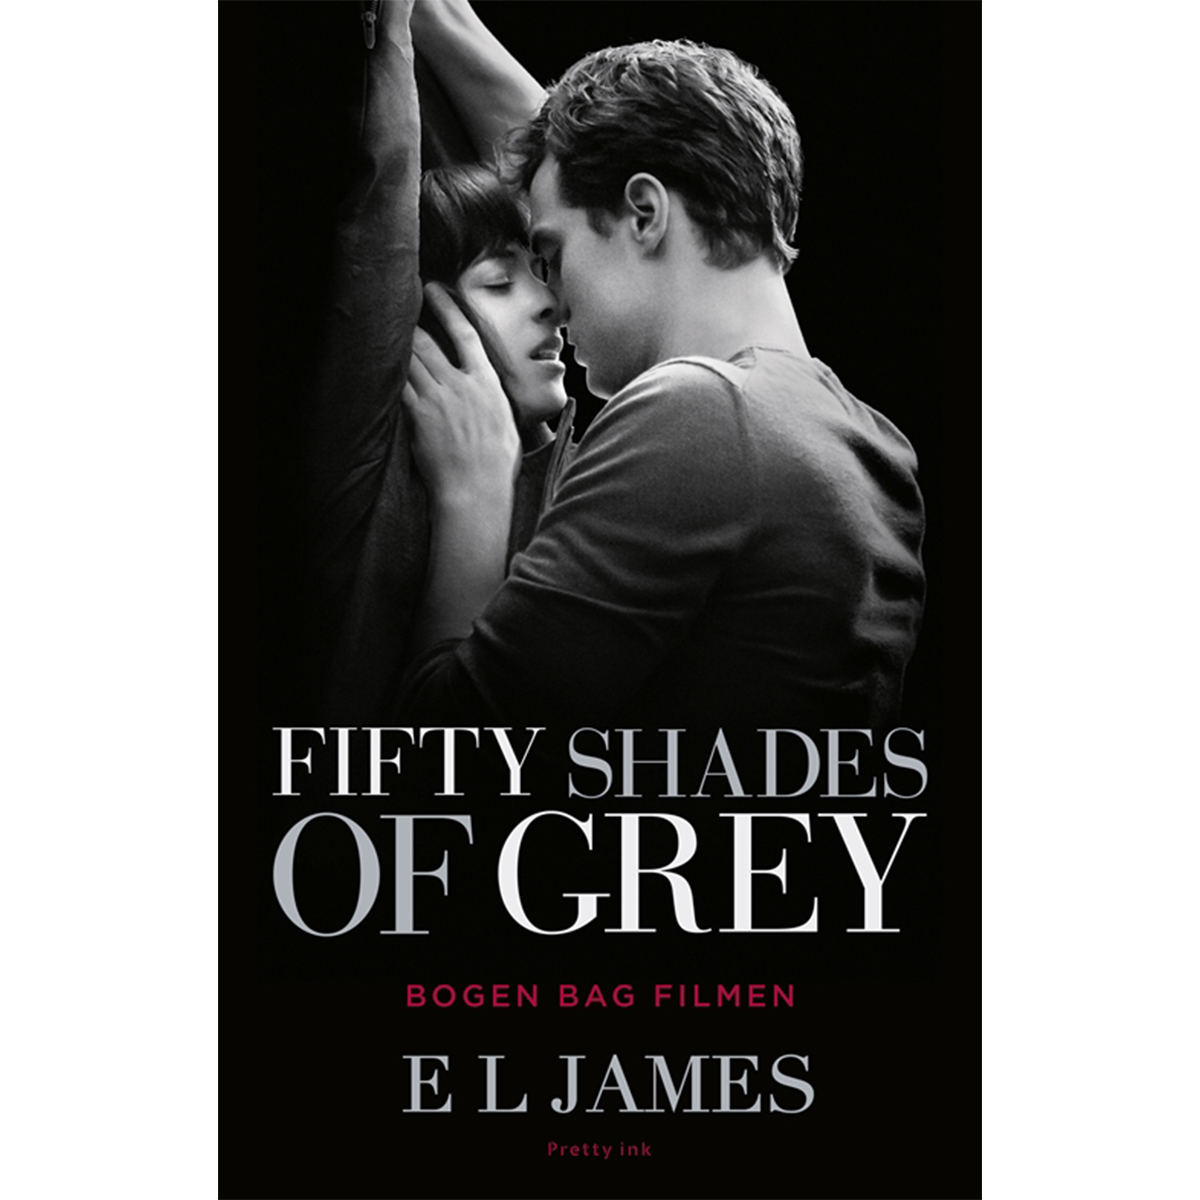 Image of   Fifty shades 1 - Fifty shades of Grey - Filmudgave - Paperback